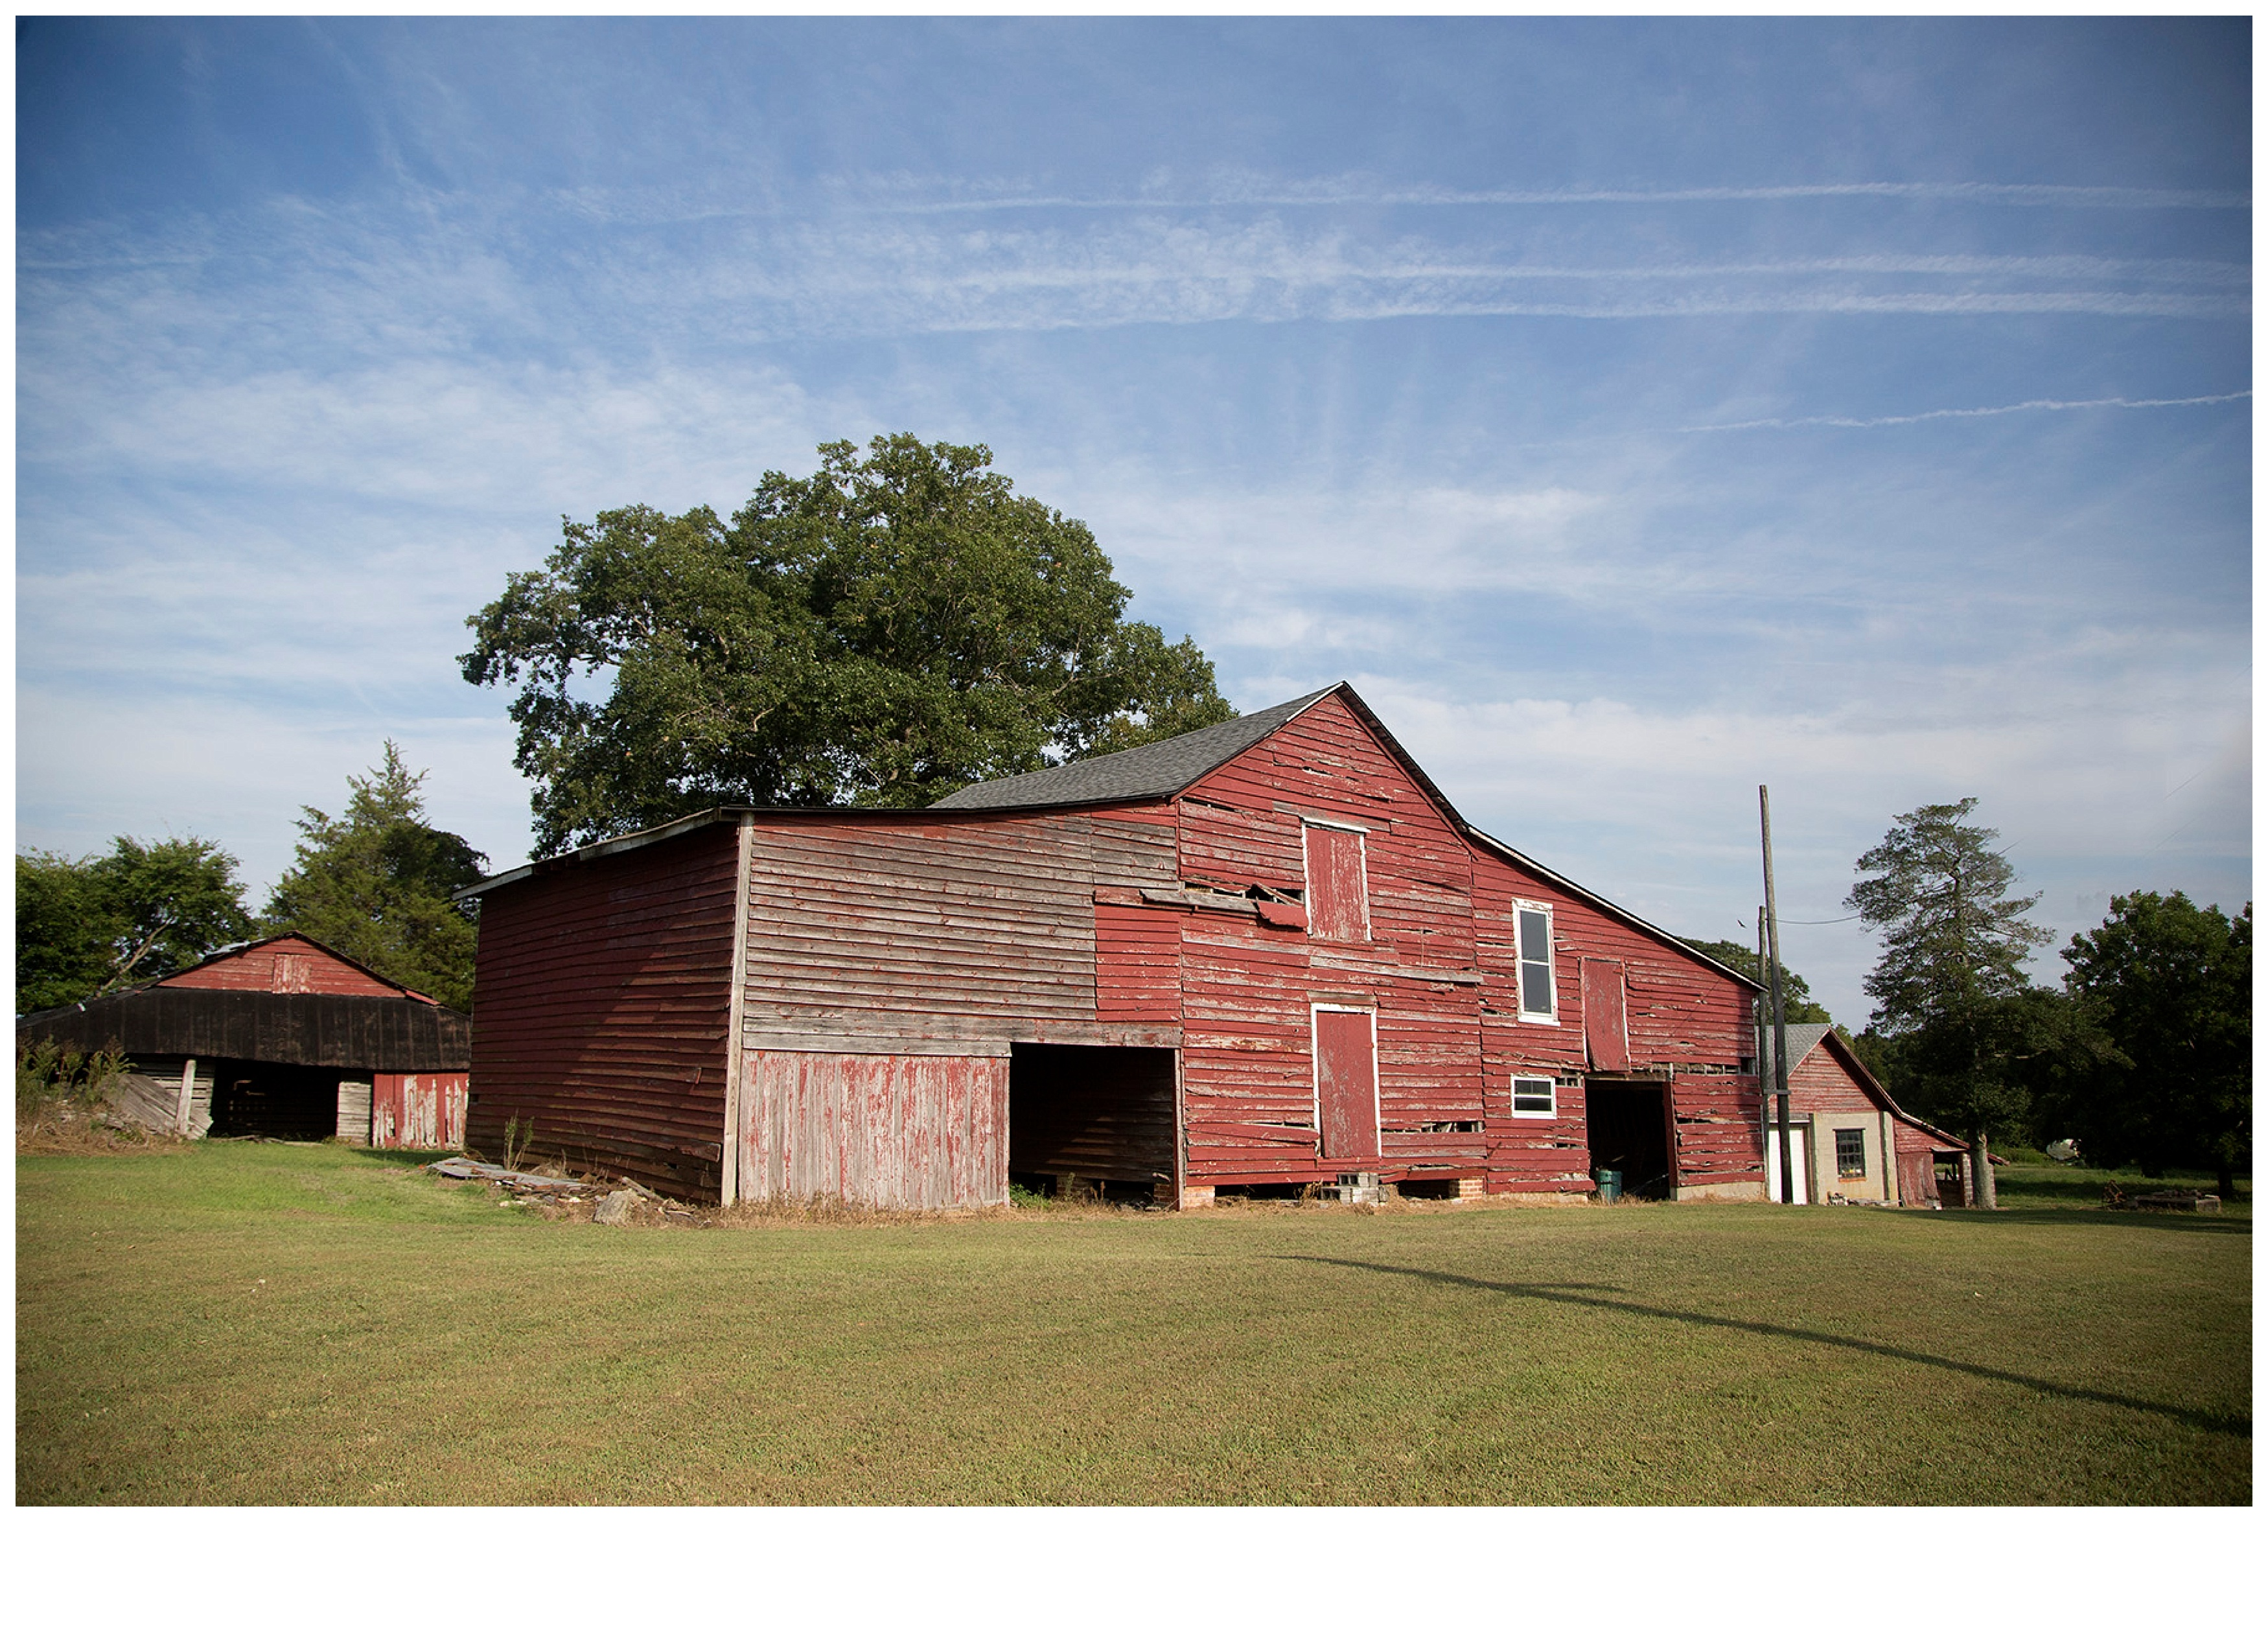 Old farm house with red barns for Red barn houses